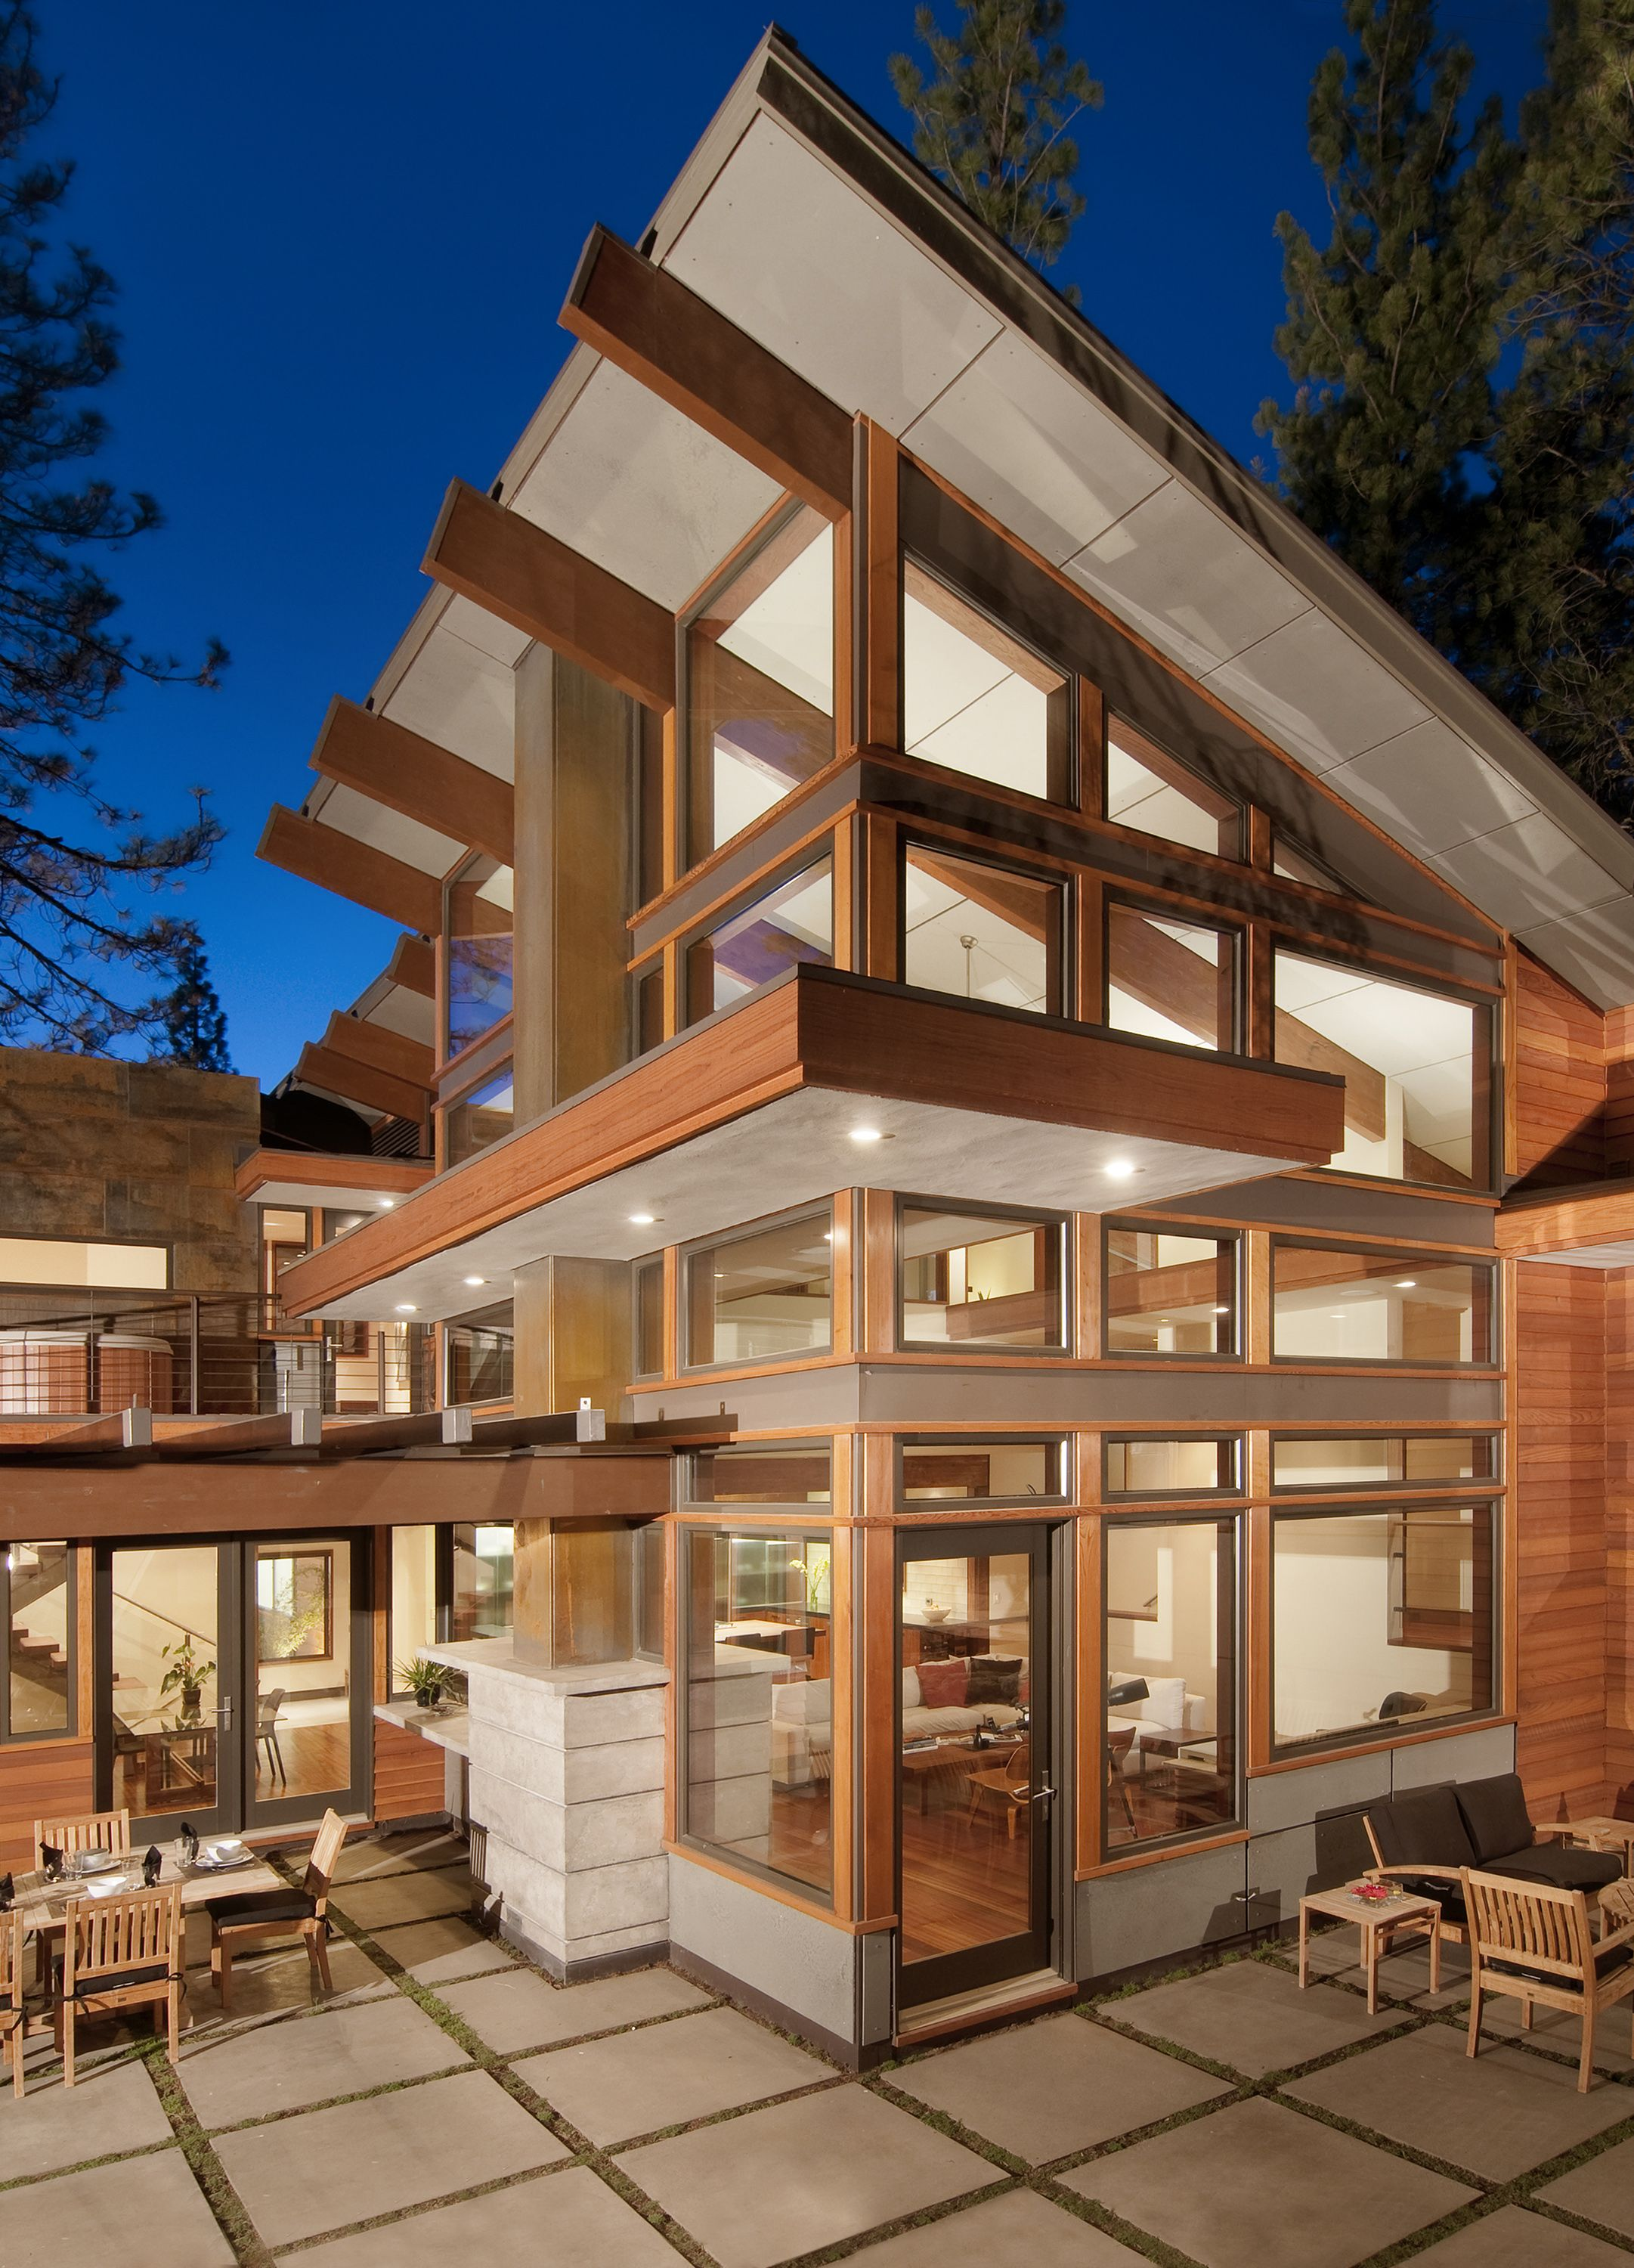 on south flipkey com bedroom lake available cabins cabin rentals of hotelyolac resorts tahoe luxury